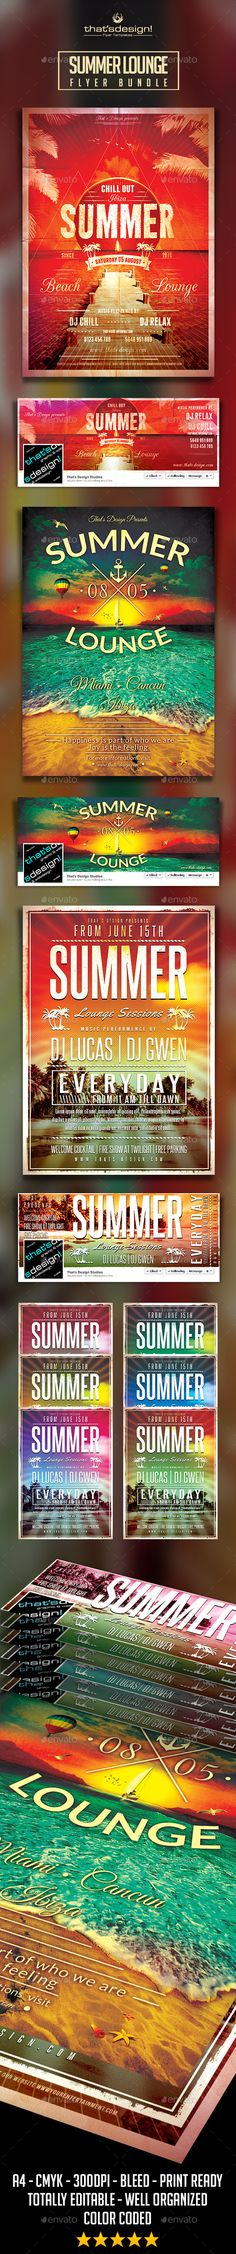 Summer Lounge Flyer Bundle ...  beach, beach flyer, beach party, beach psd, bundle, caribbean, chill out, cocktail, dj, dubstep, electro, festival, flyer, holiday, indie, latin, lou606, lounge, music, palms, party, poster, seaside, summer, summer PSD, sum